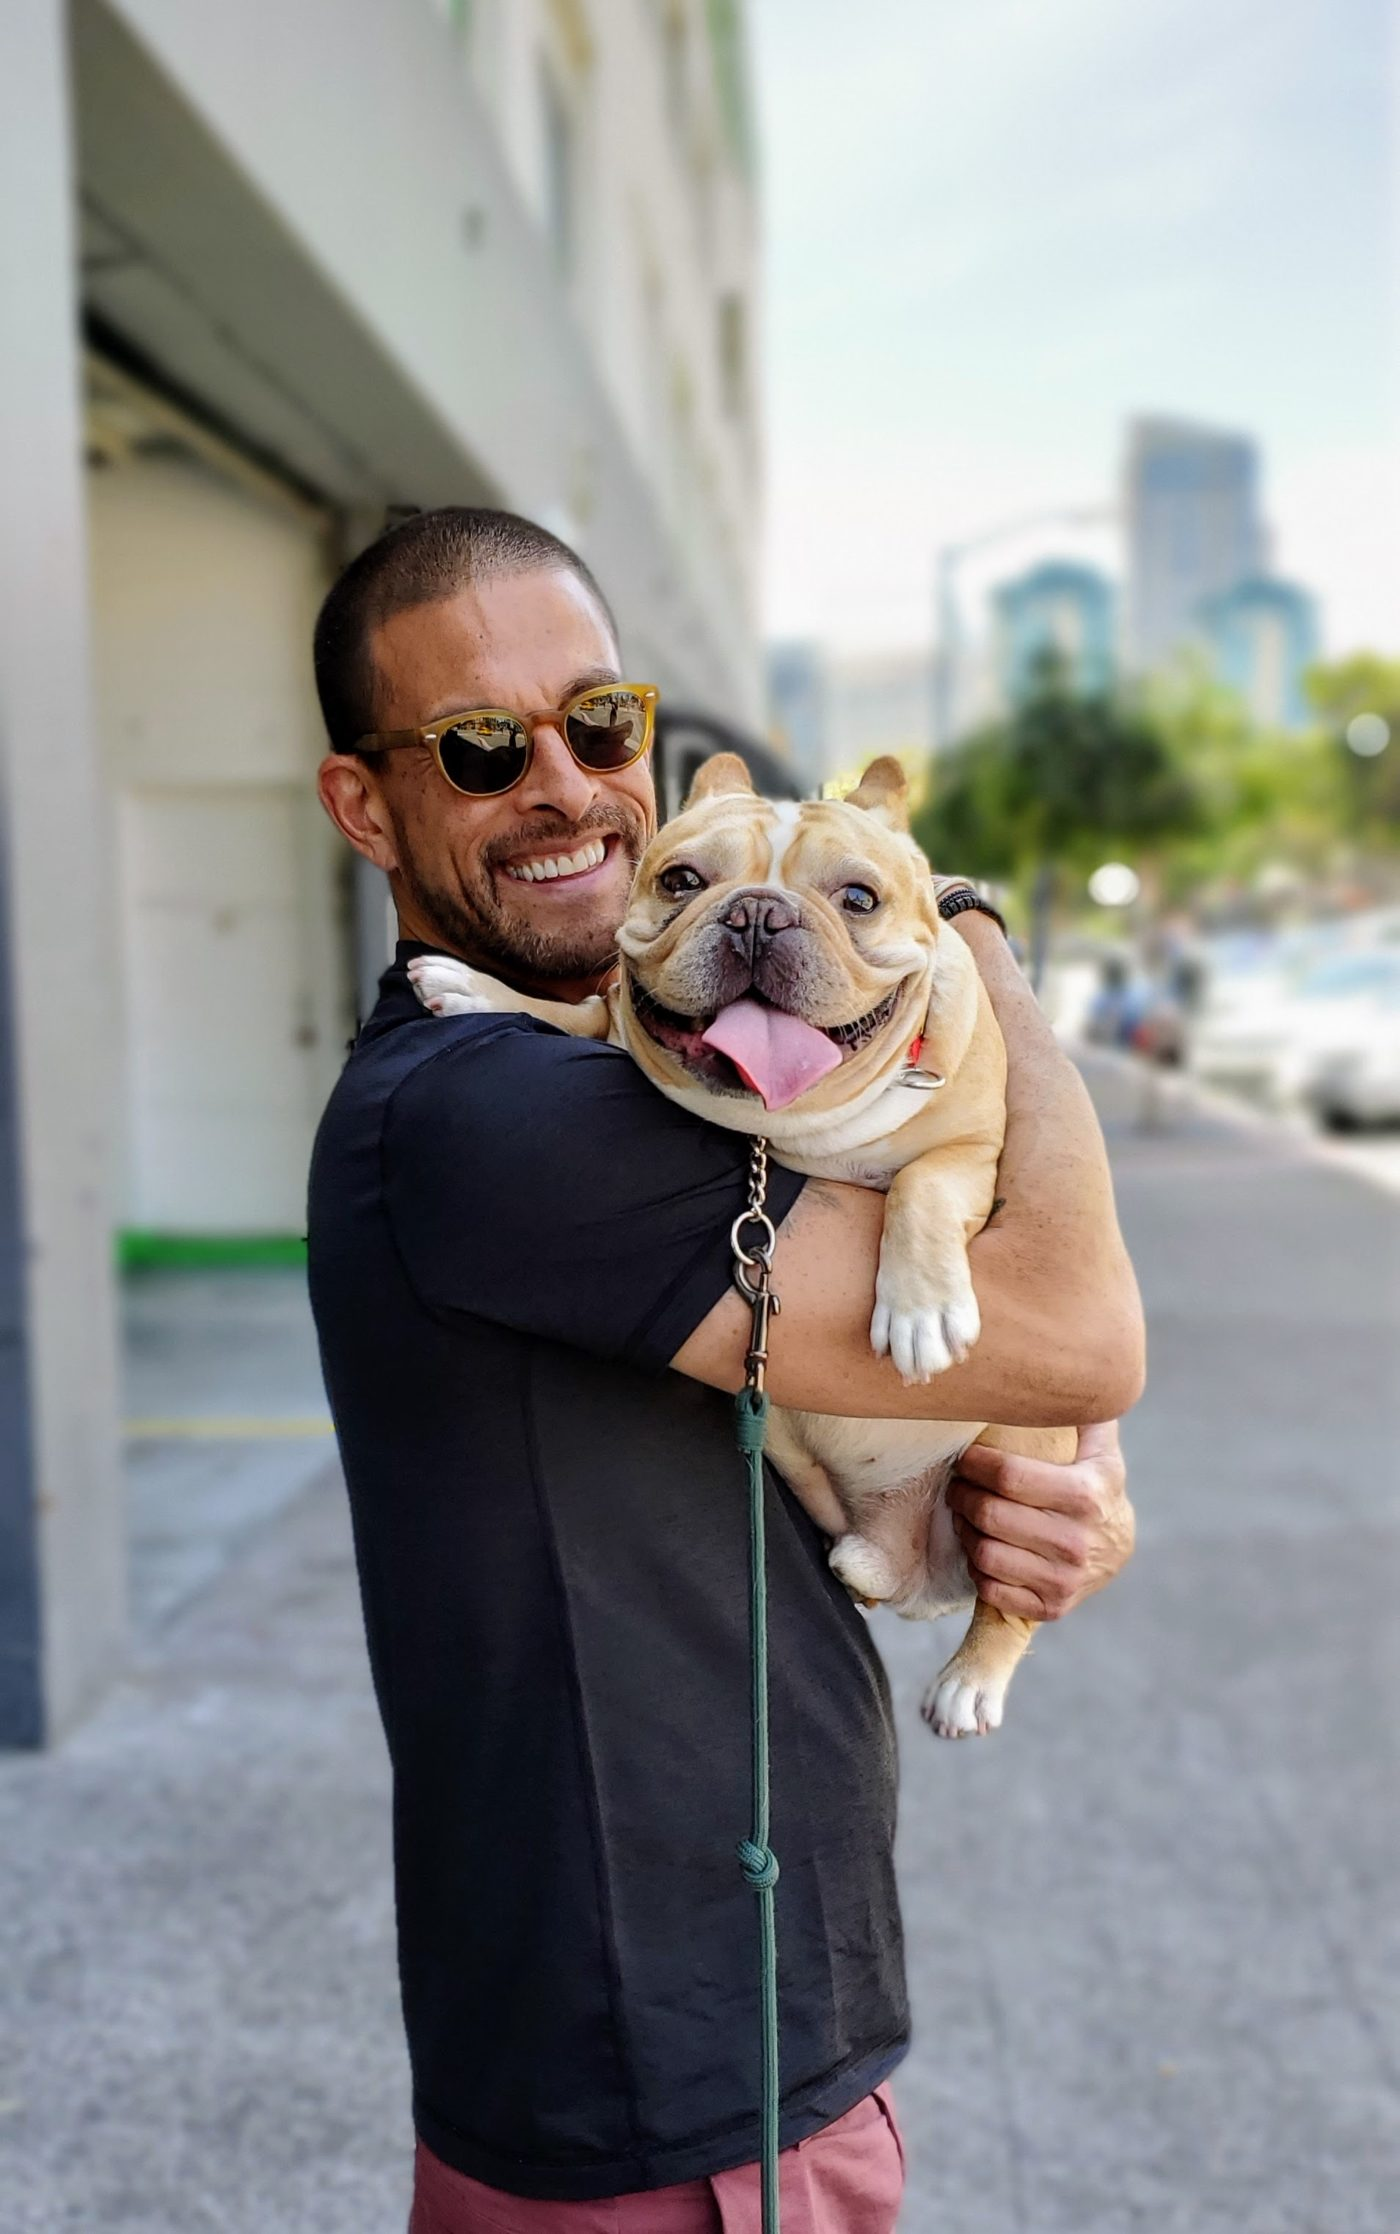 #rawfooddiet, #frenchbulldogtraining, #downtownsandiegodogtraining